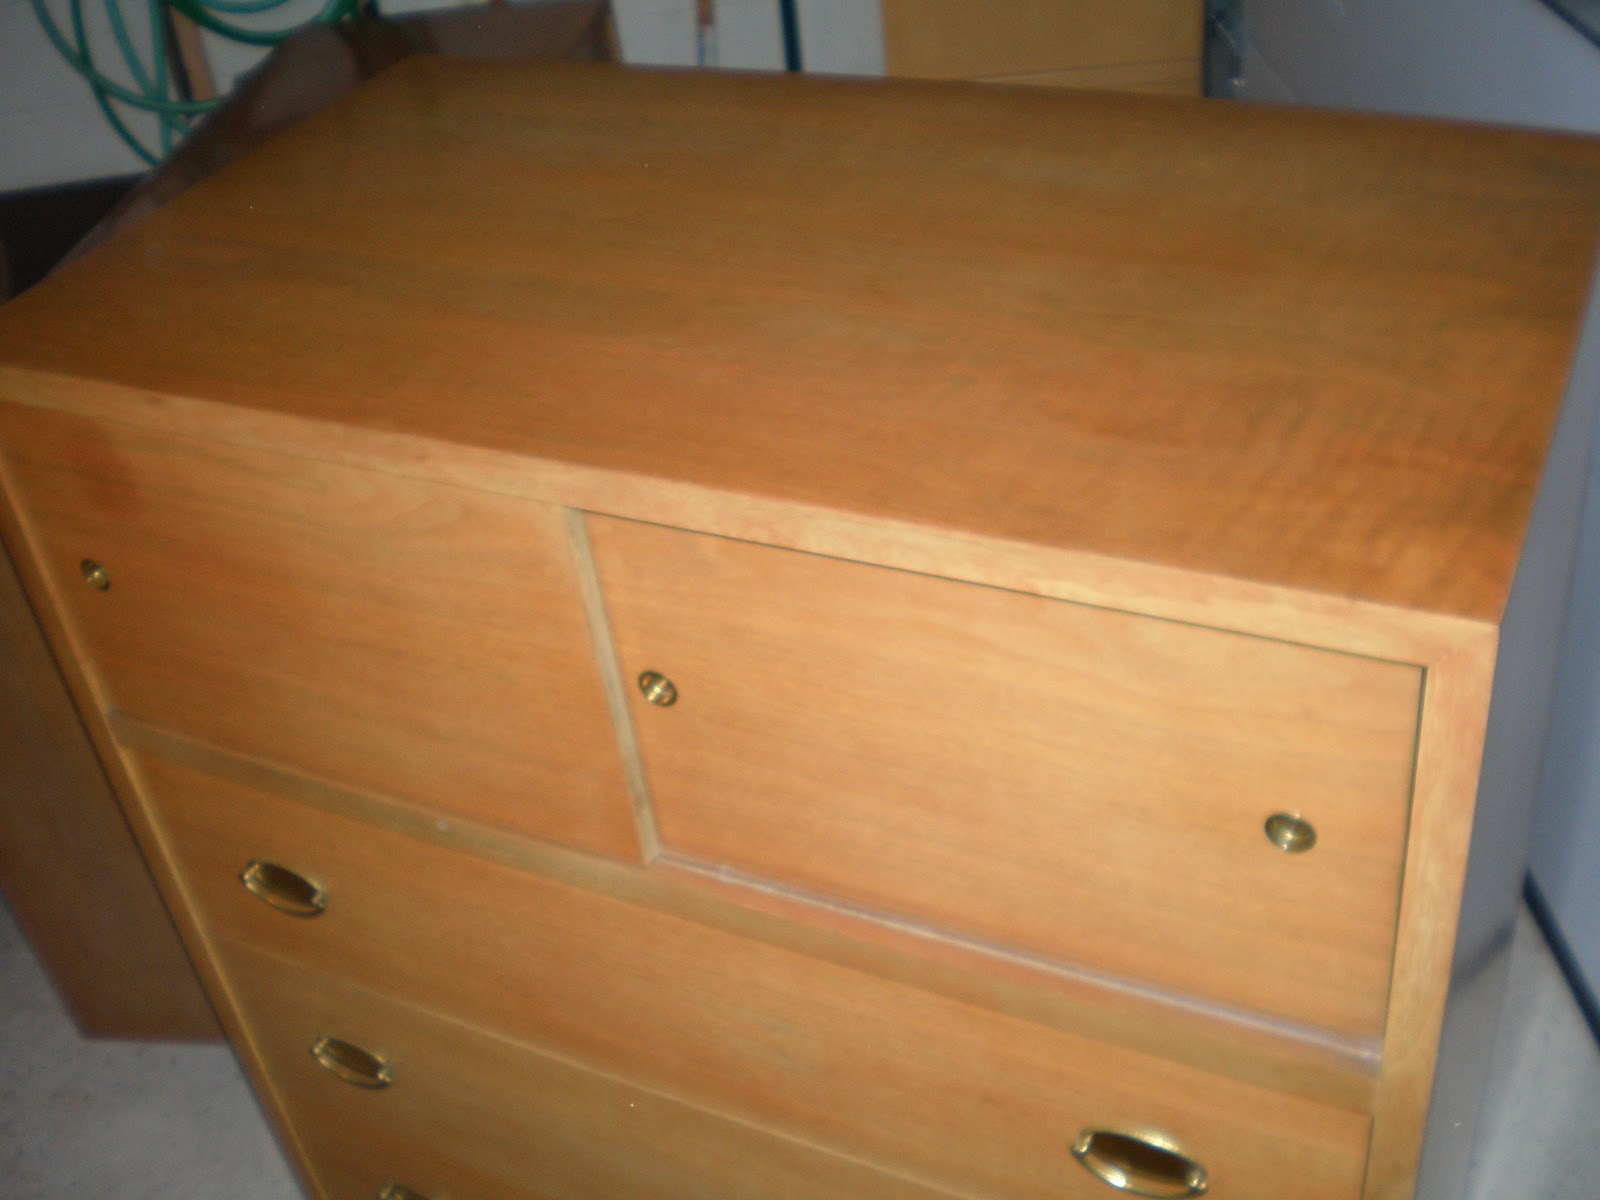 The Retrospective Modernist Mid Century Highboy From The West Michigan Furniture Company Sold